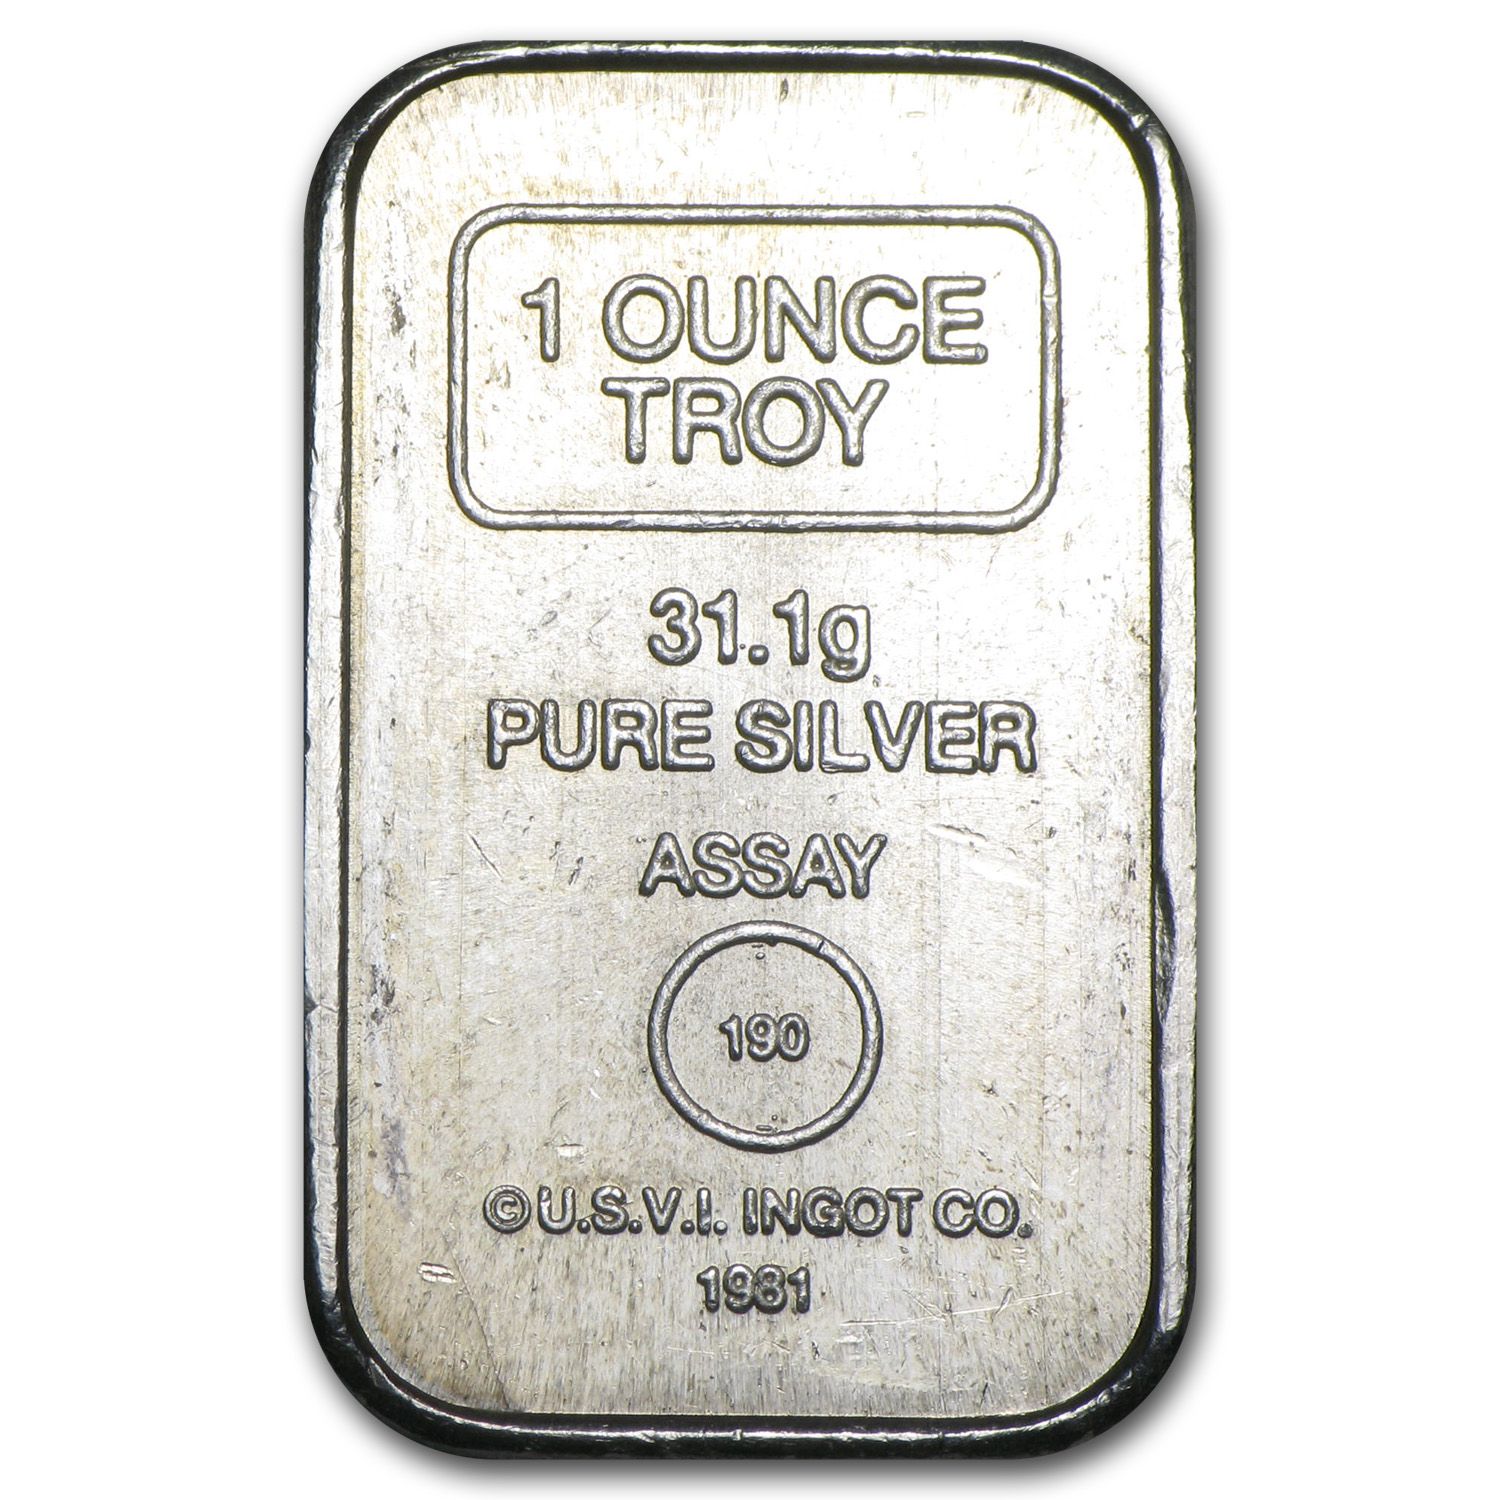 1 oz Silver Bars - A-Mark Brick